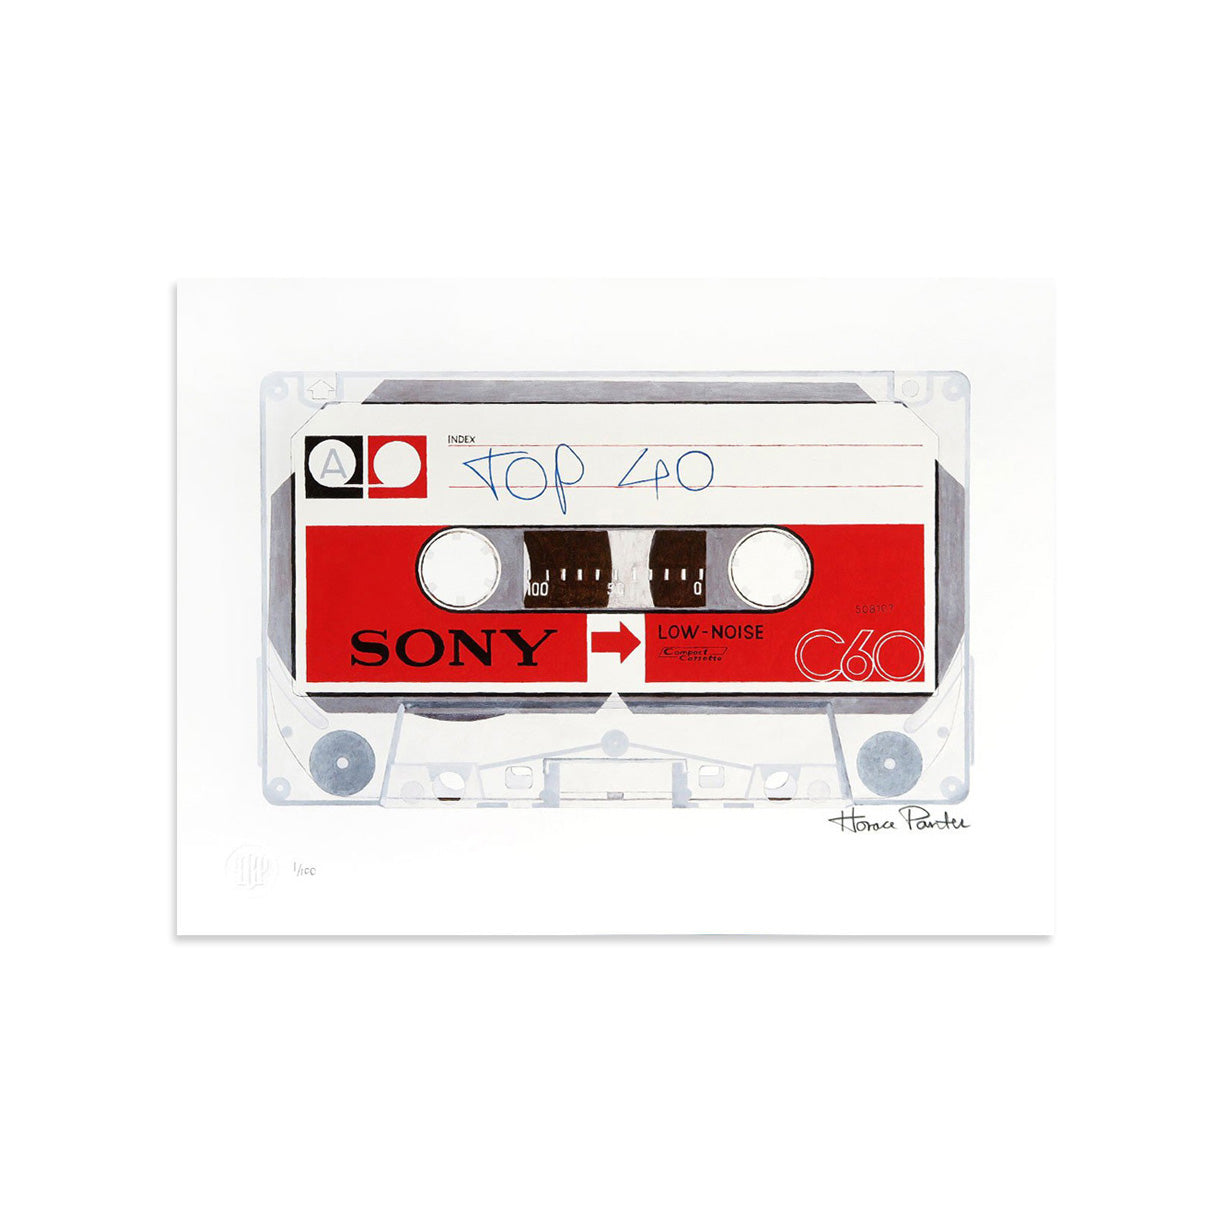 Top 40 by Horace Panter | Print | Poster Child Prints